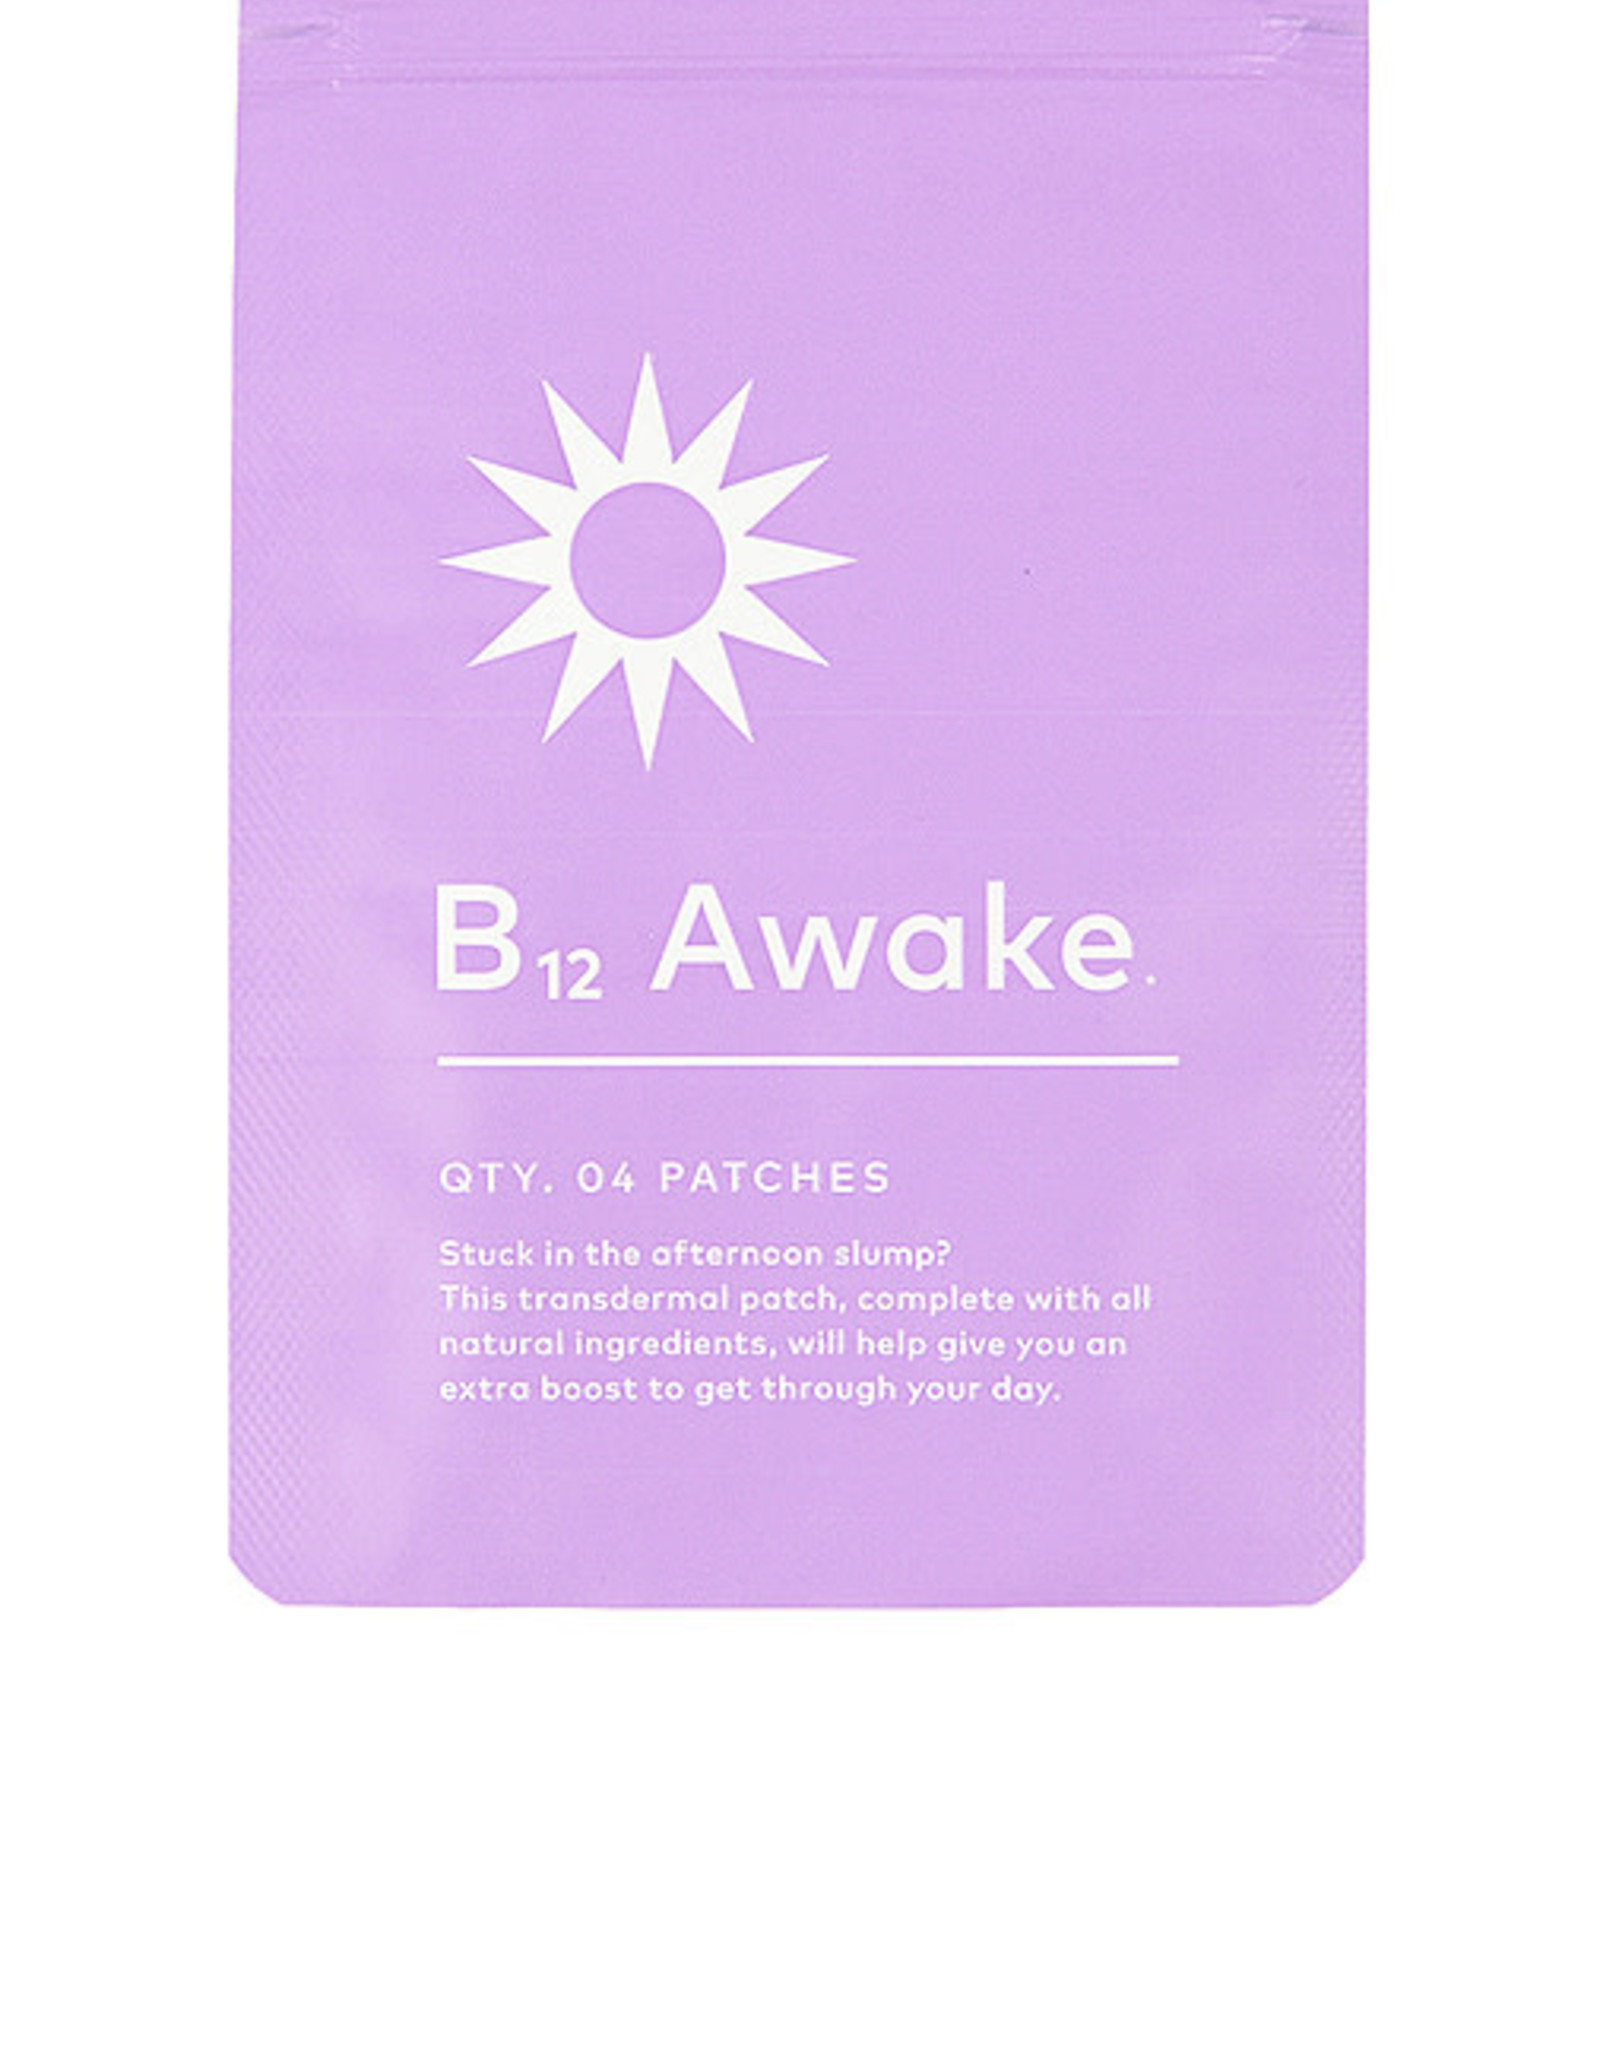 B12 Awake Transdermal Patch